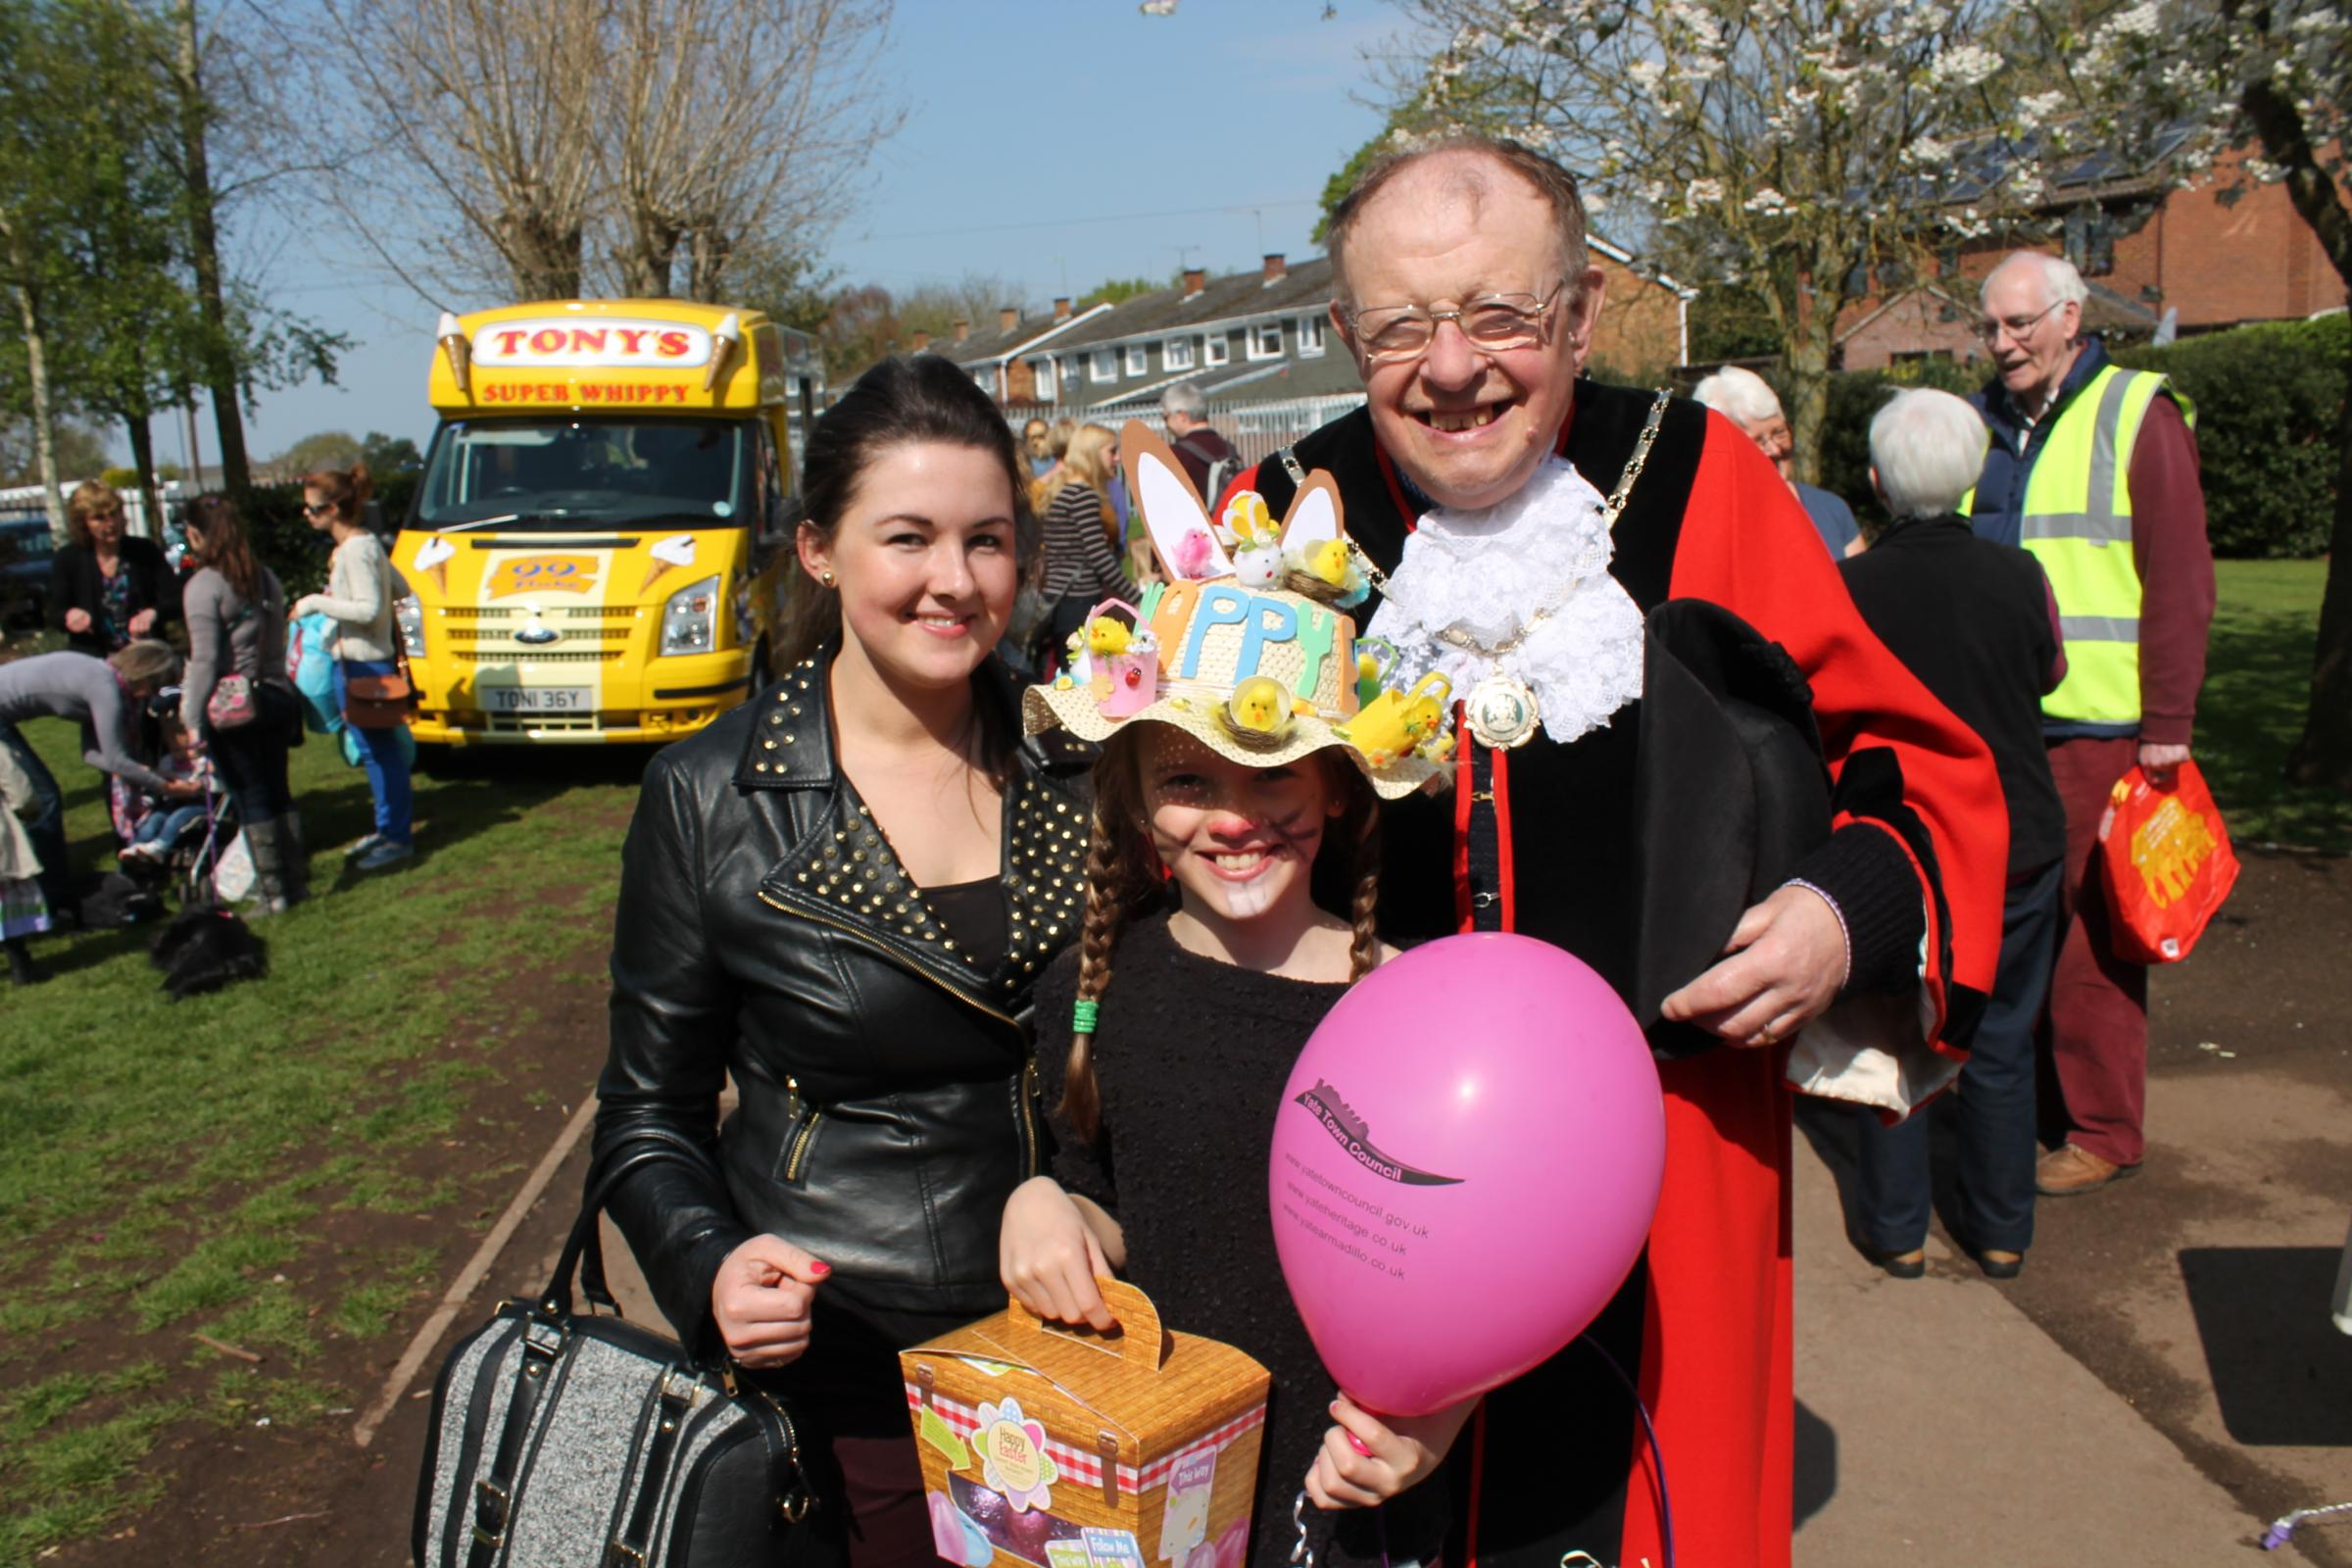 Lauren Wixon and her sister Alesha Hendy with Yate mayor Cllr Wully Perks at the Easter event in Kingsgate Park